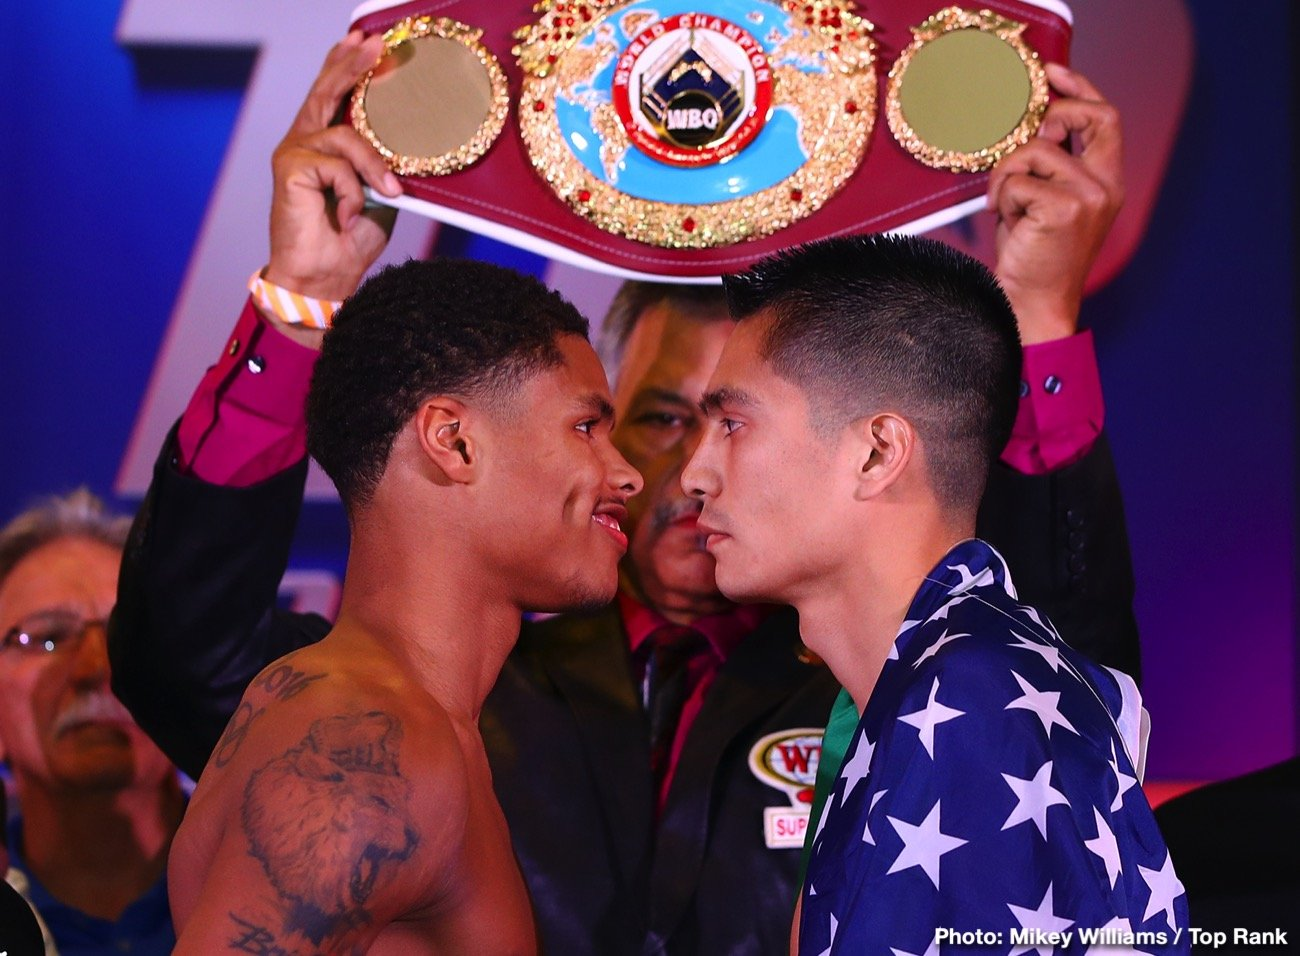 Shakur Stevenson - Stevenson-Gonzalez, Joshua Greer Jr.-Antonio Nieves and Mikaela Mayer Alejandra Zamora to stream Saturday LIVE on ESPN+ at 10 p.m. ET/7 p.m. PT